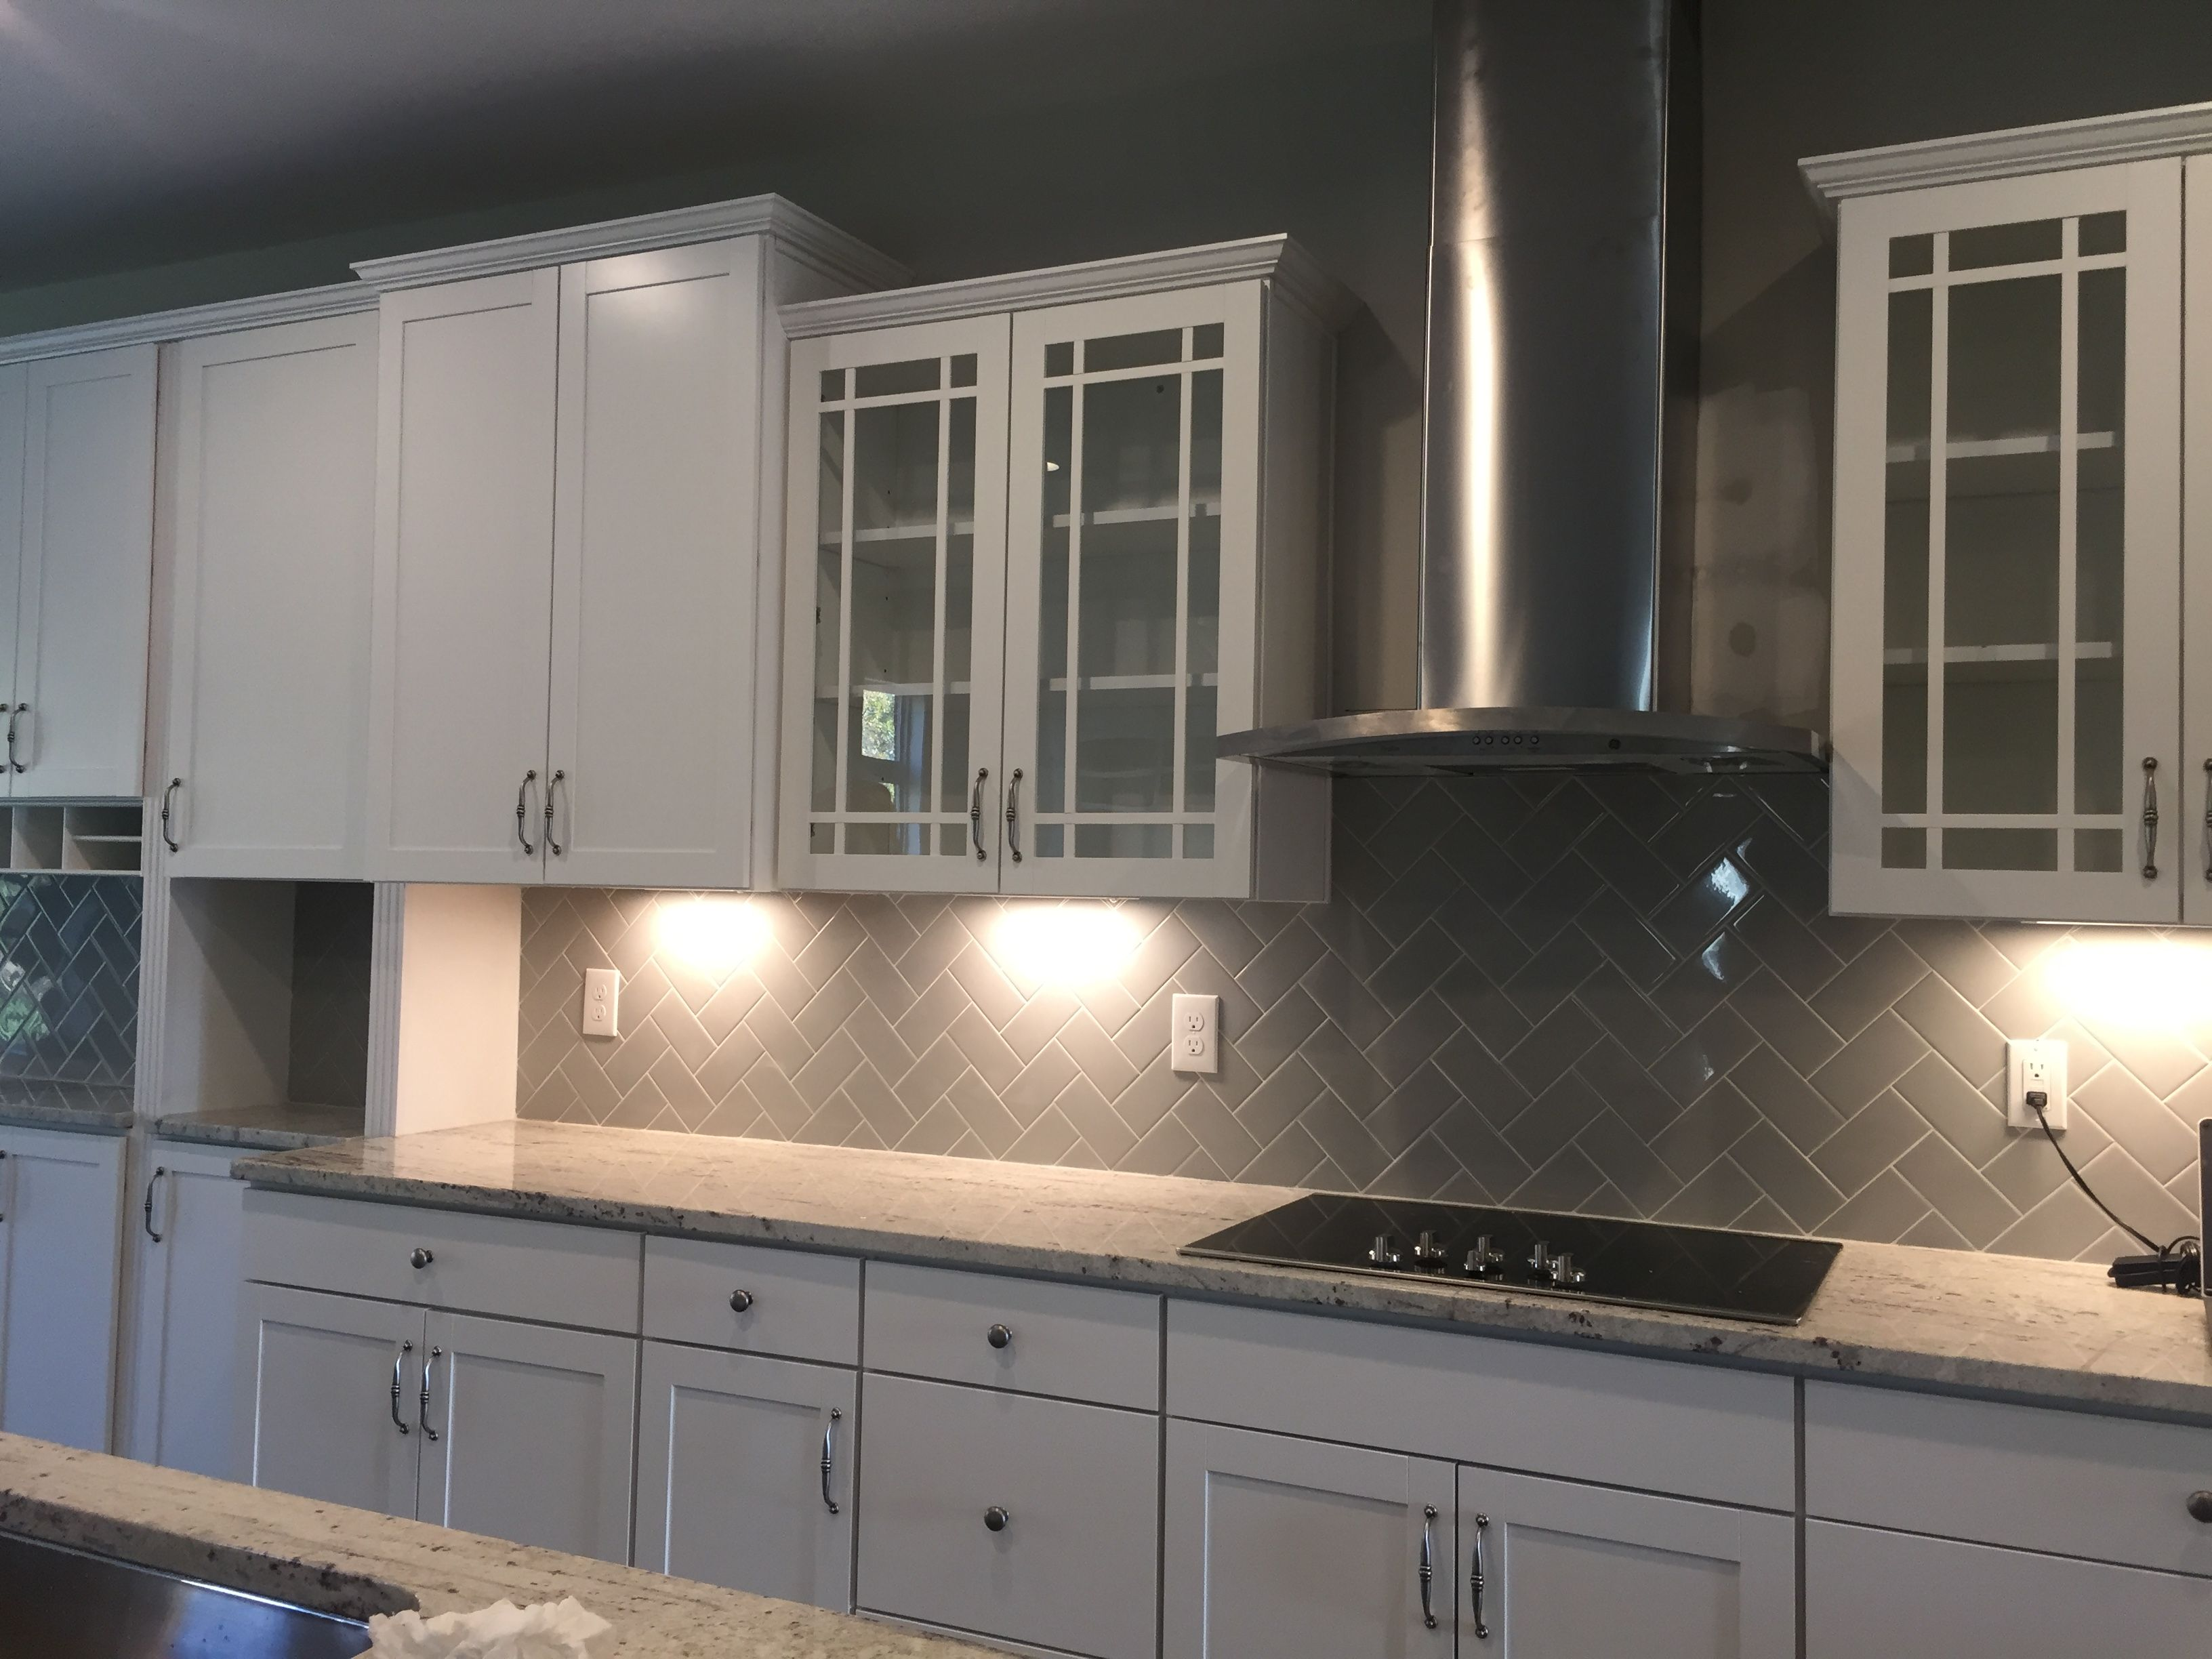 Best Brellin White Cabinets Added Glass Cabinets River White 400 x 300